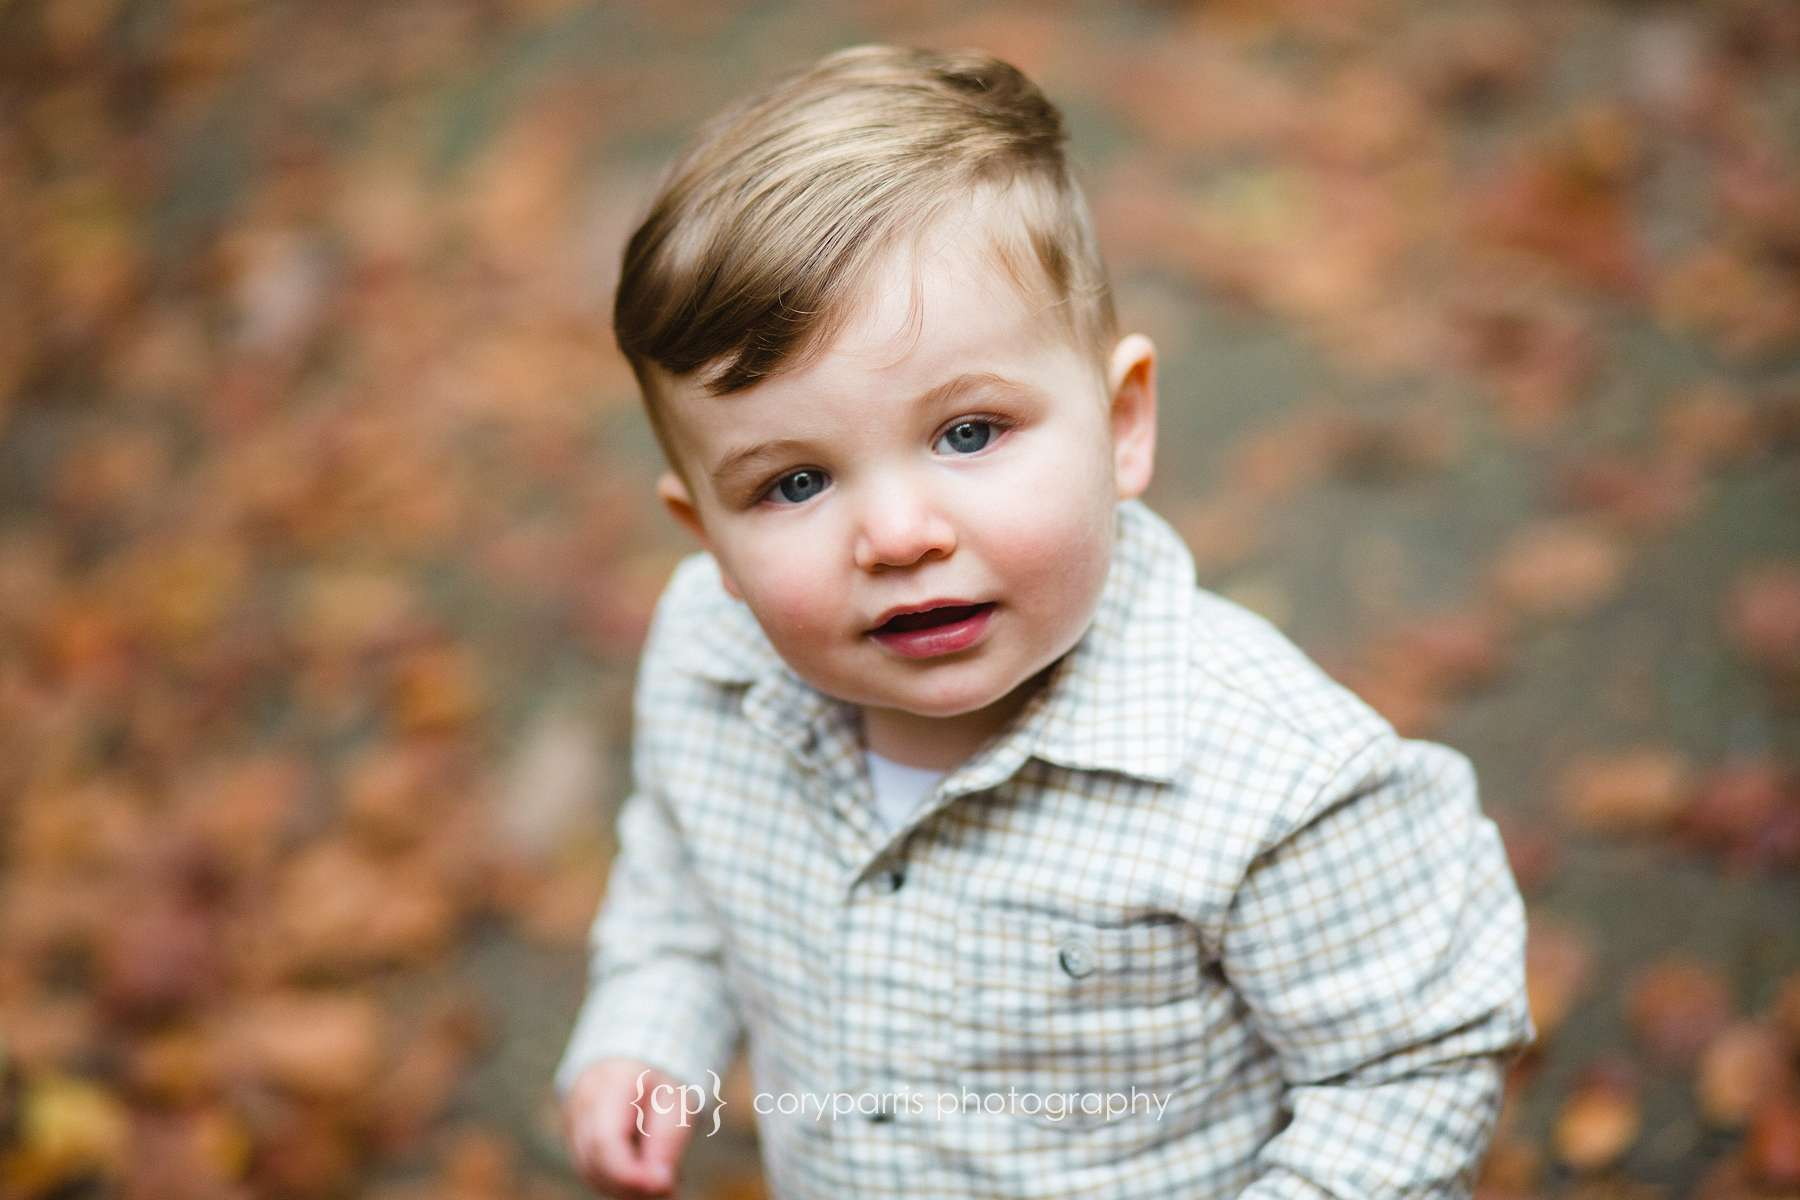 Adorable little boy Child Photography in Seattle